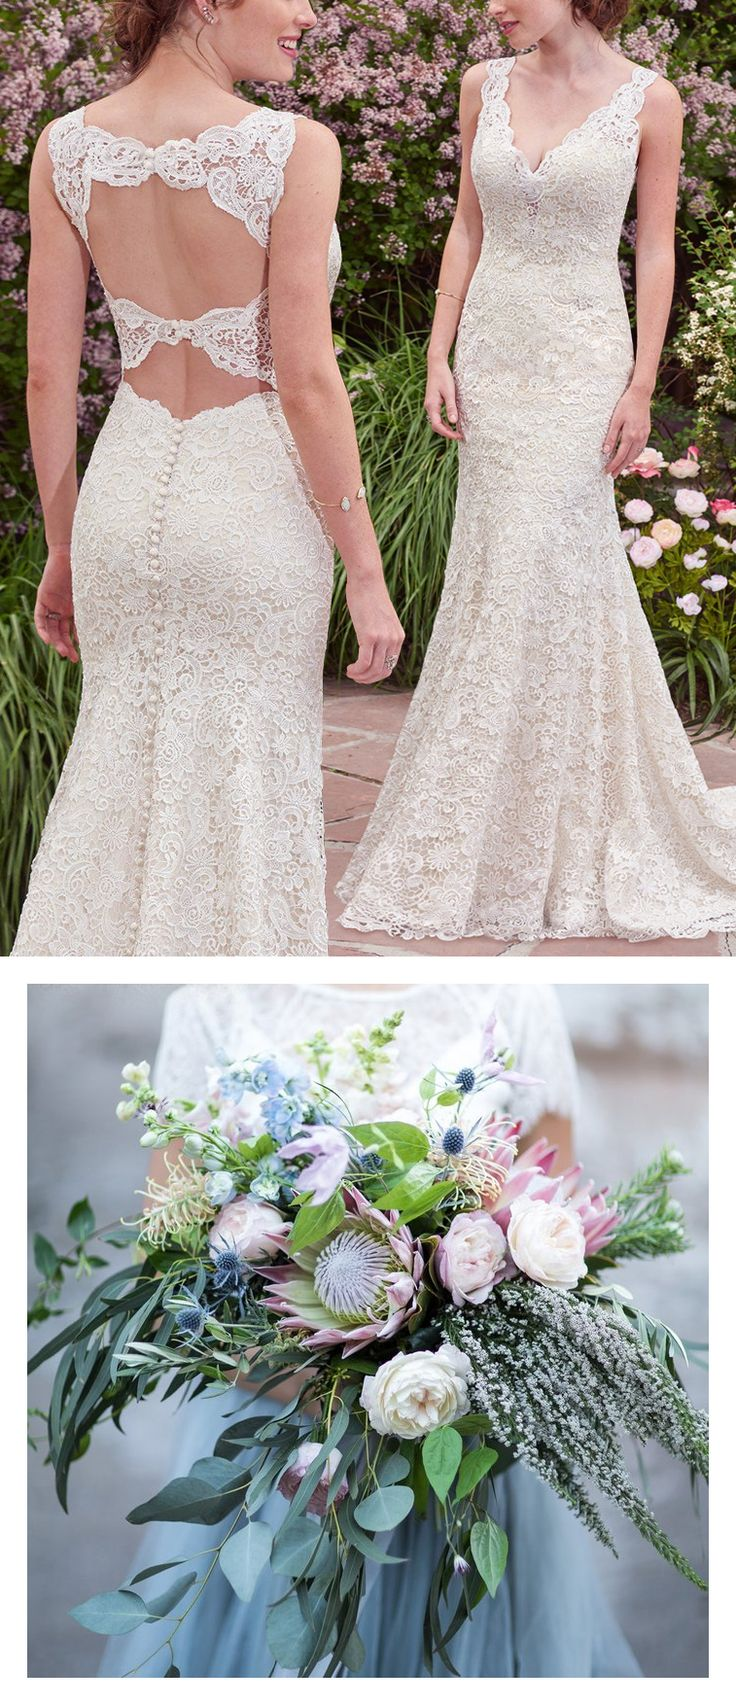 9 Bouquets For Your Boho Wedding Gown - Lace boho wedding dress with double keyhole back Hope by Rebecca Ingram. Photo: Tyler Rye Photography | Bouquet: By Bloomers